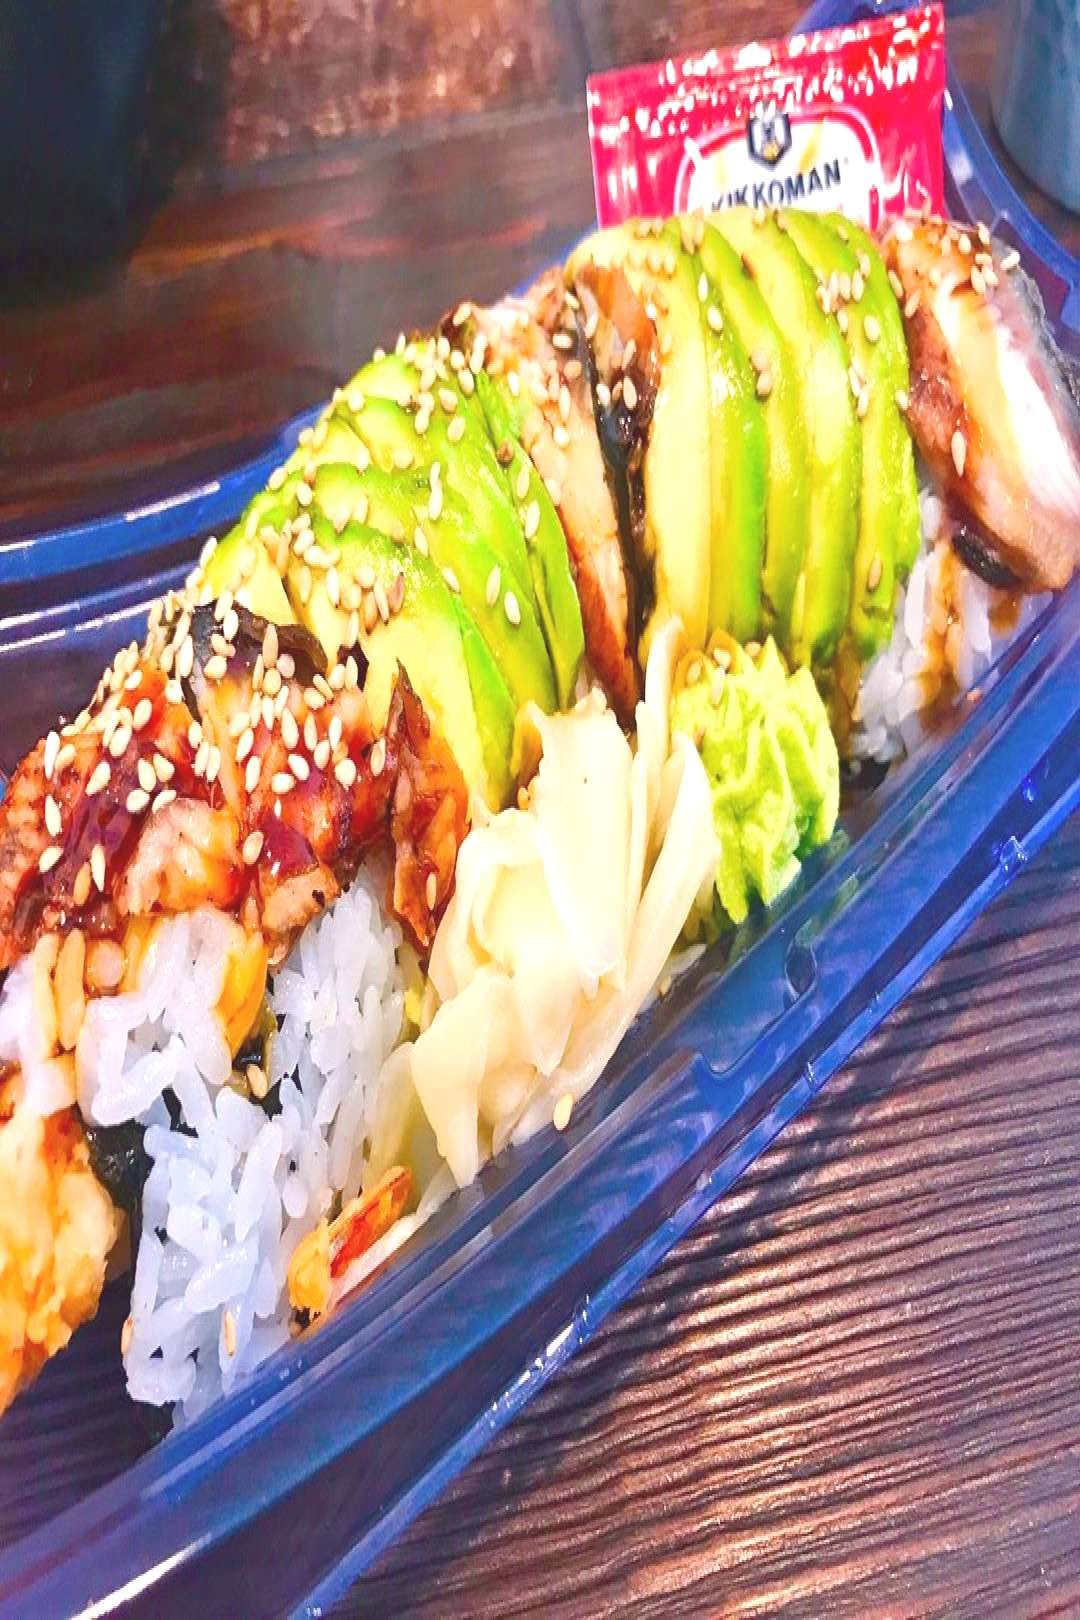 #dragoneelroll #tempurashrimp #eelroll #dragon #roll #imit #food #eel dragon eel roll #dragoneelroll #eelroll #tempurashrimp #eel #imitYou can find imitation crab salad and more on our website.dragon eel roll #dragoneelroll #eelroll #t...